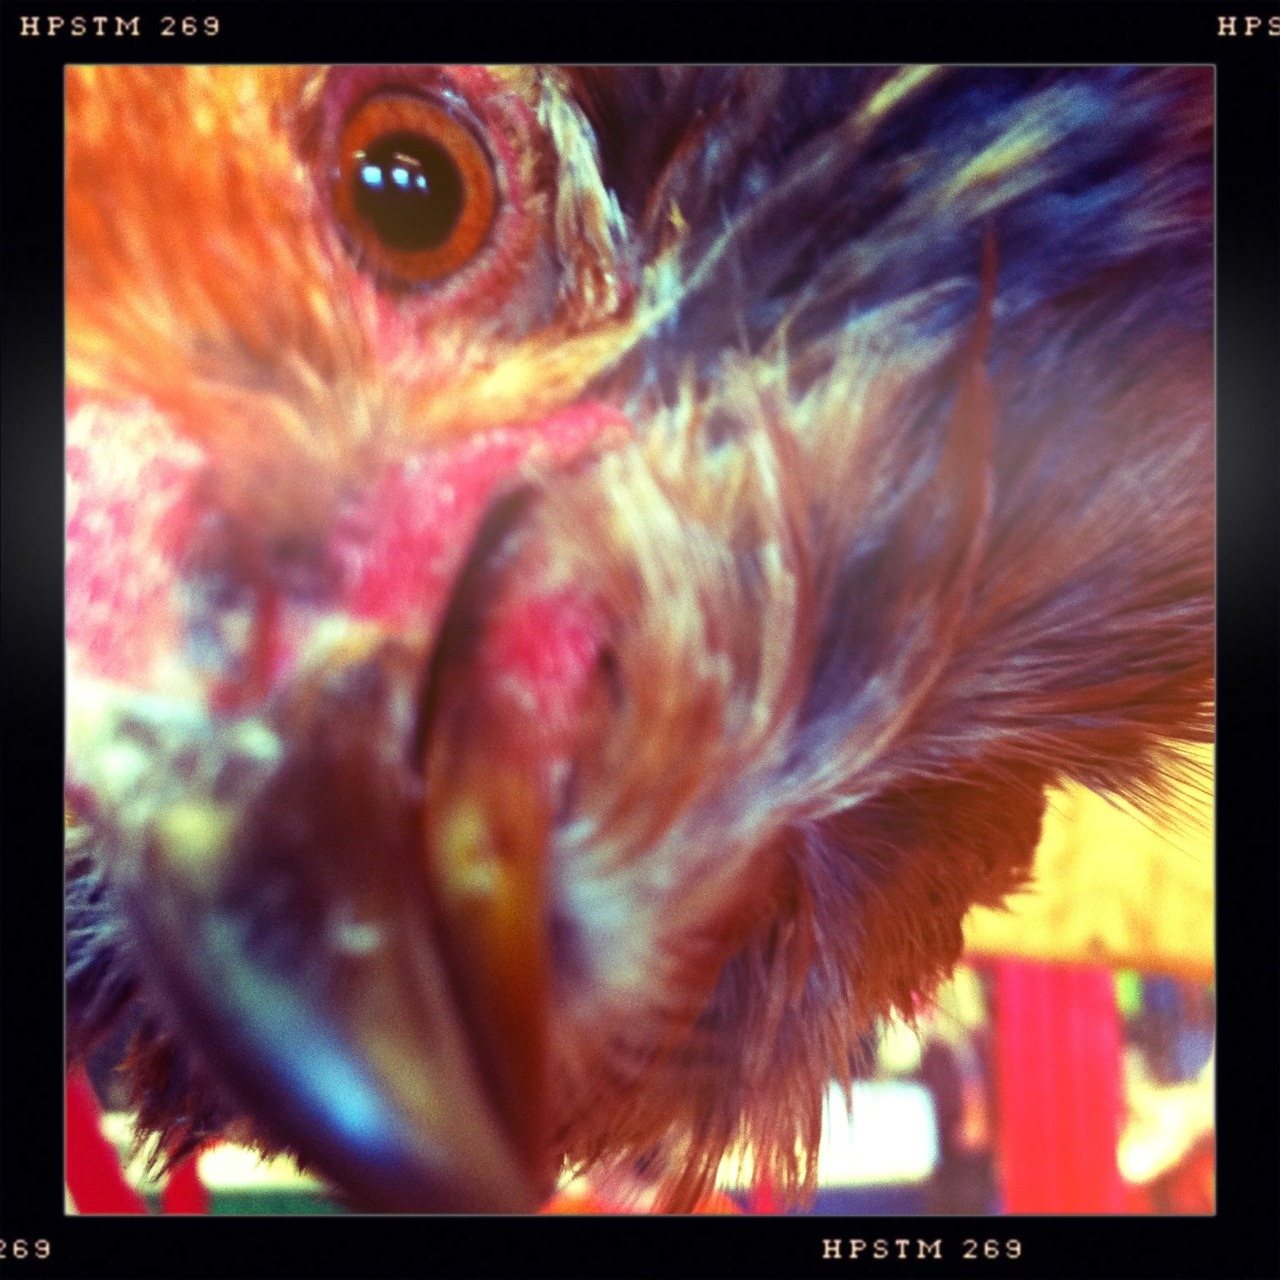 Pecking Rooster Taken with Hipstamatic, Chunky Lens, Pistil Film, No Flash.